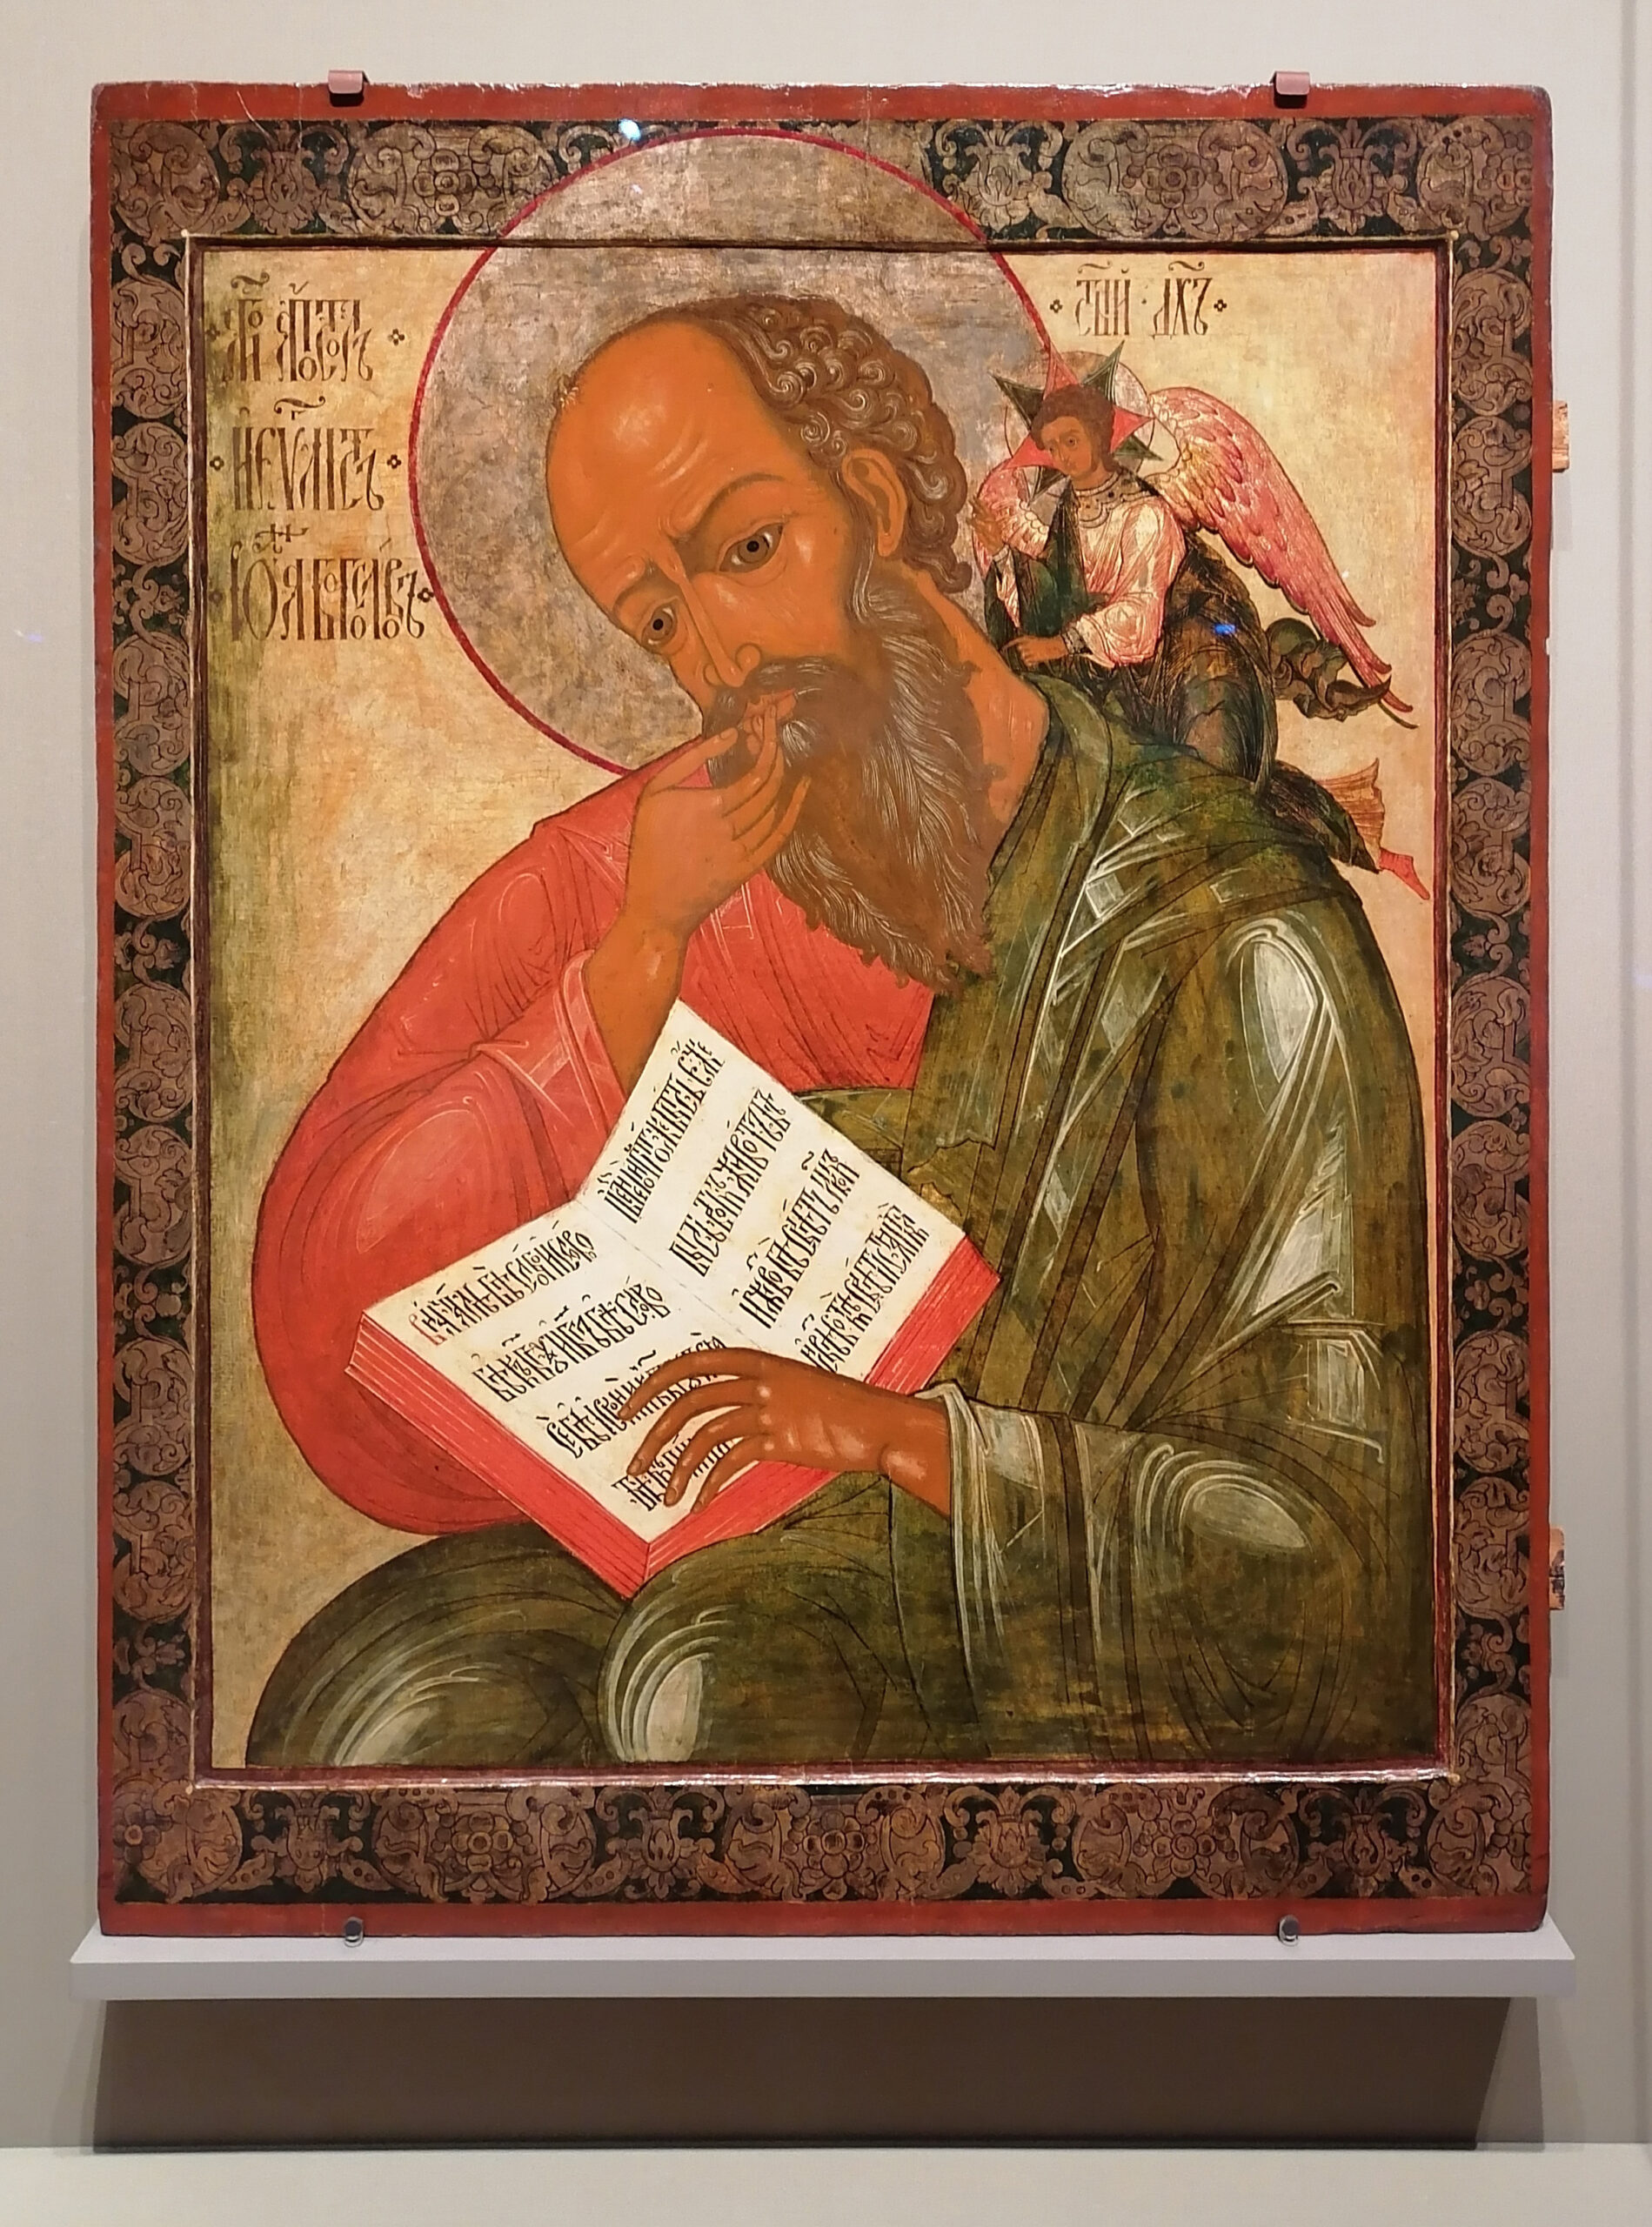 A Son, a Mother, a Scribe, the Church and the Gospel